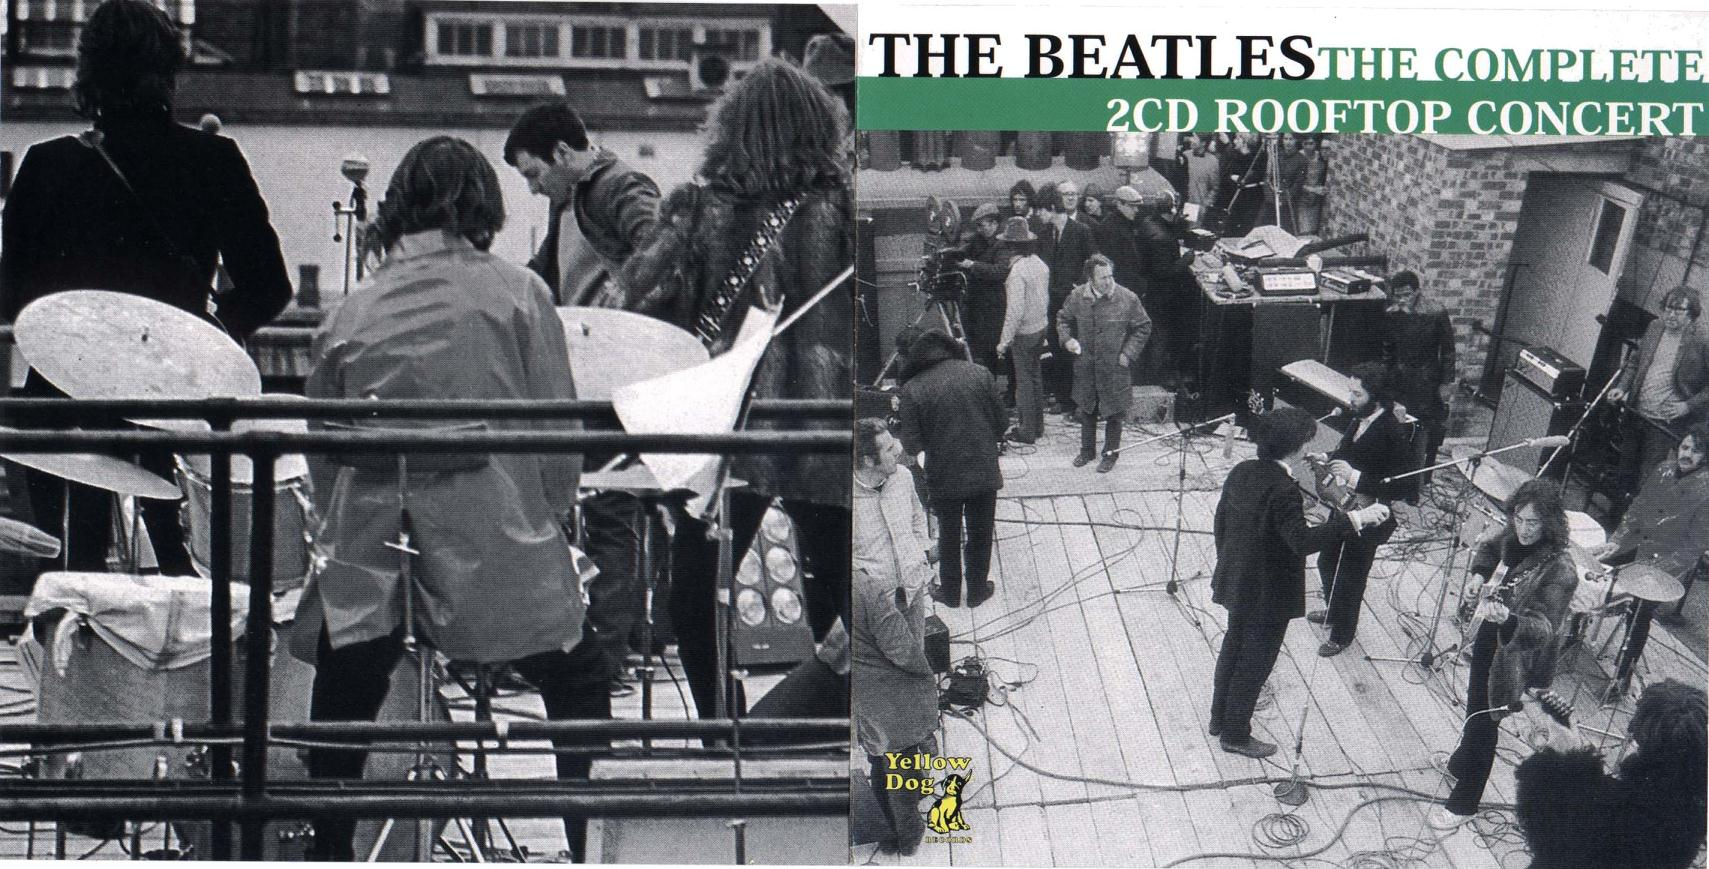 1969-01-20-THE_COMPLETE_ROOFTOP_CONCERT-Cover